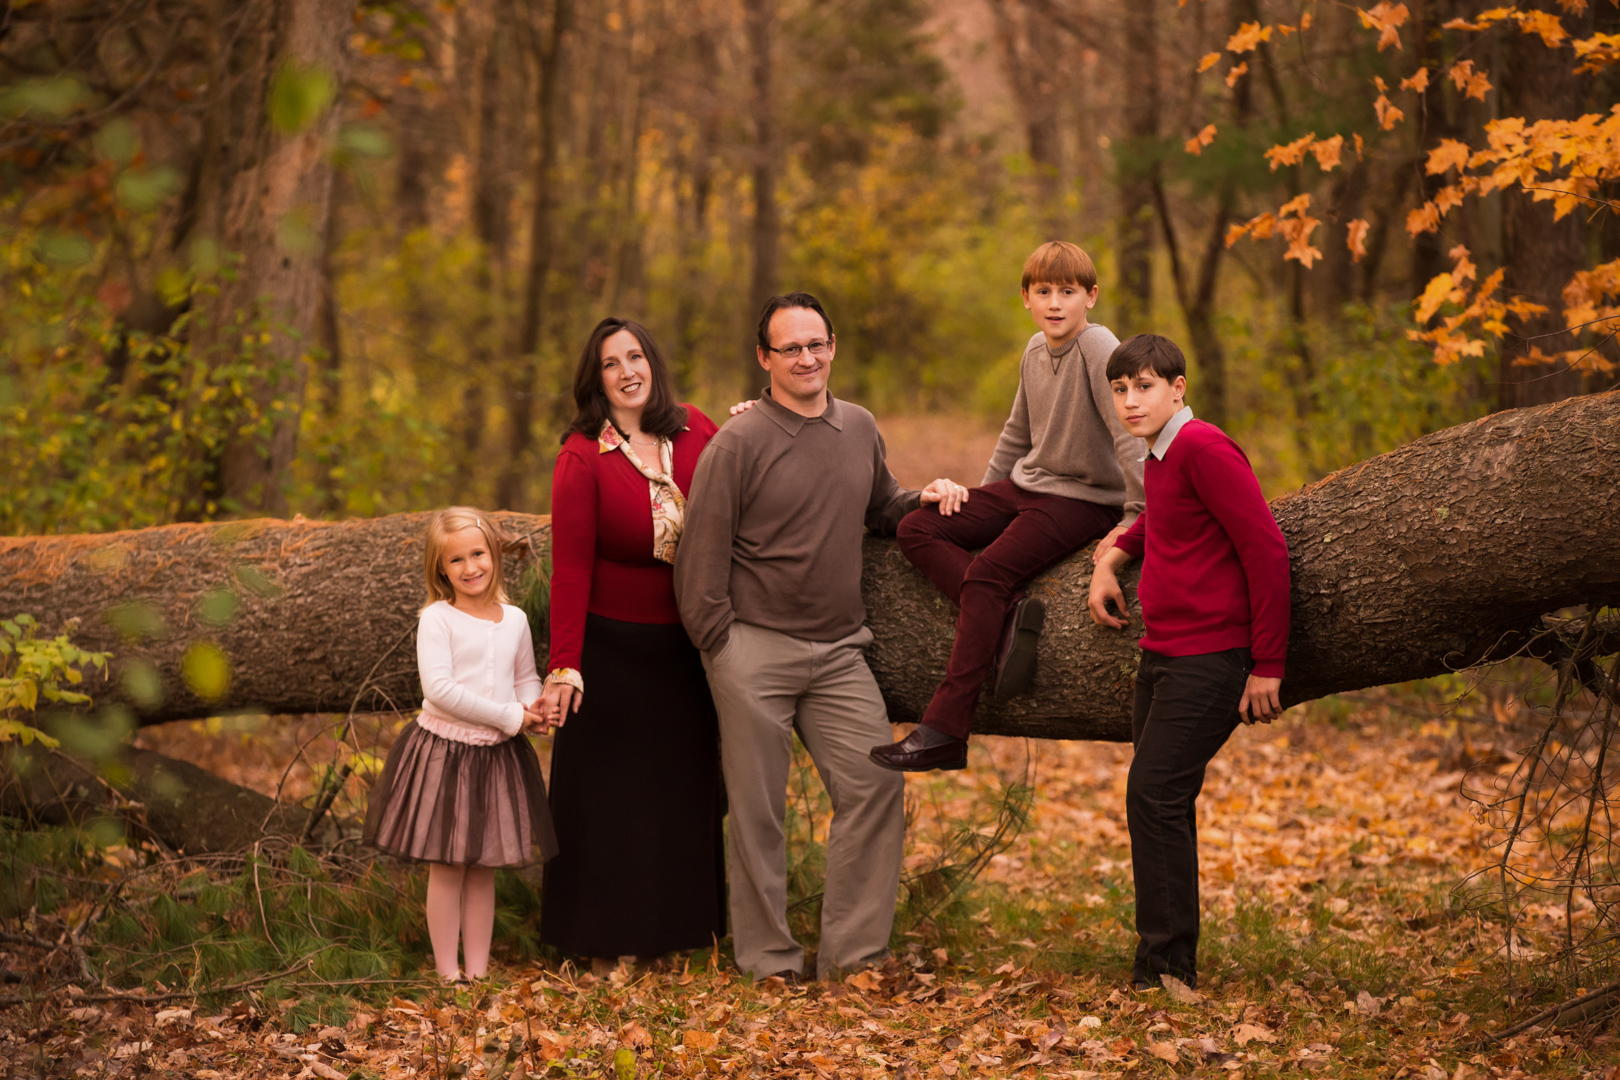 family picture portrait kids outdoor woods casual boston